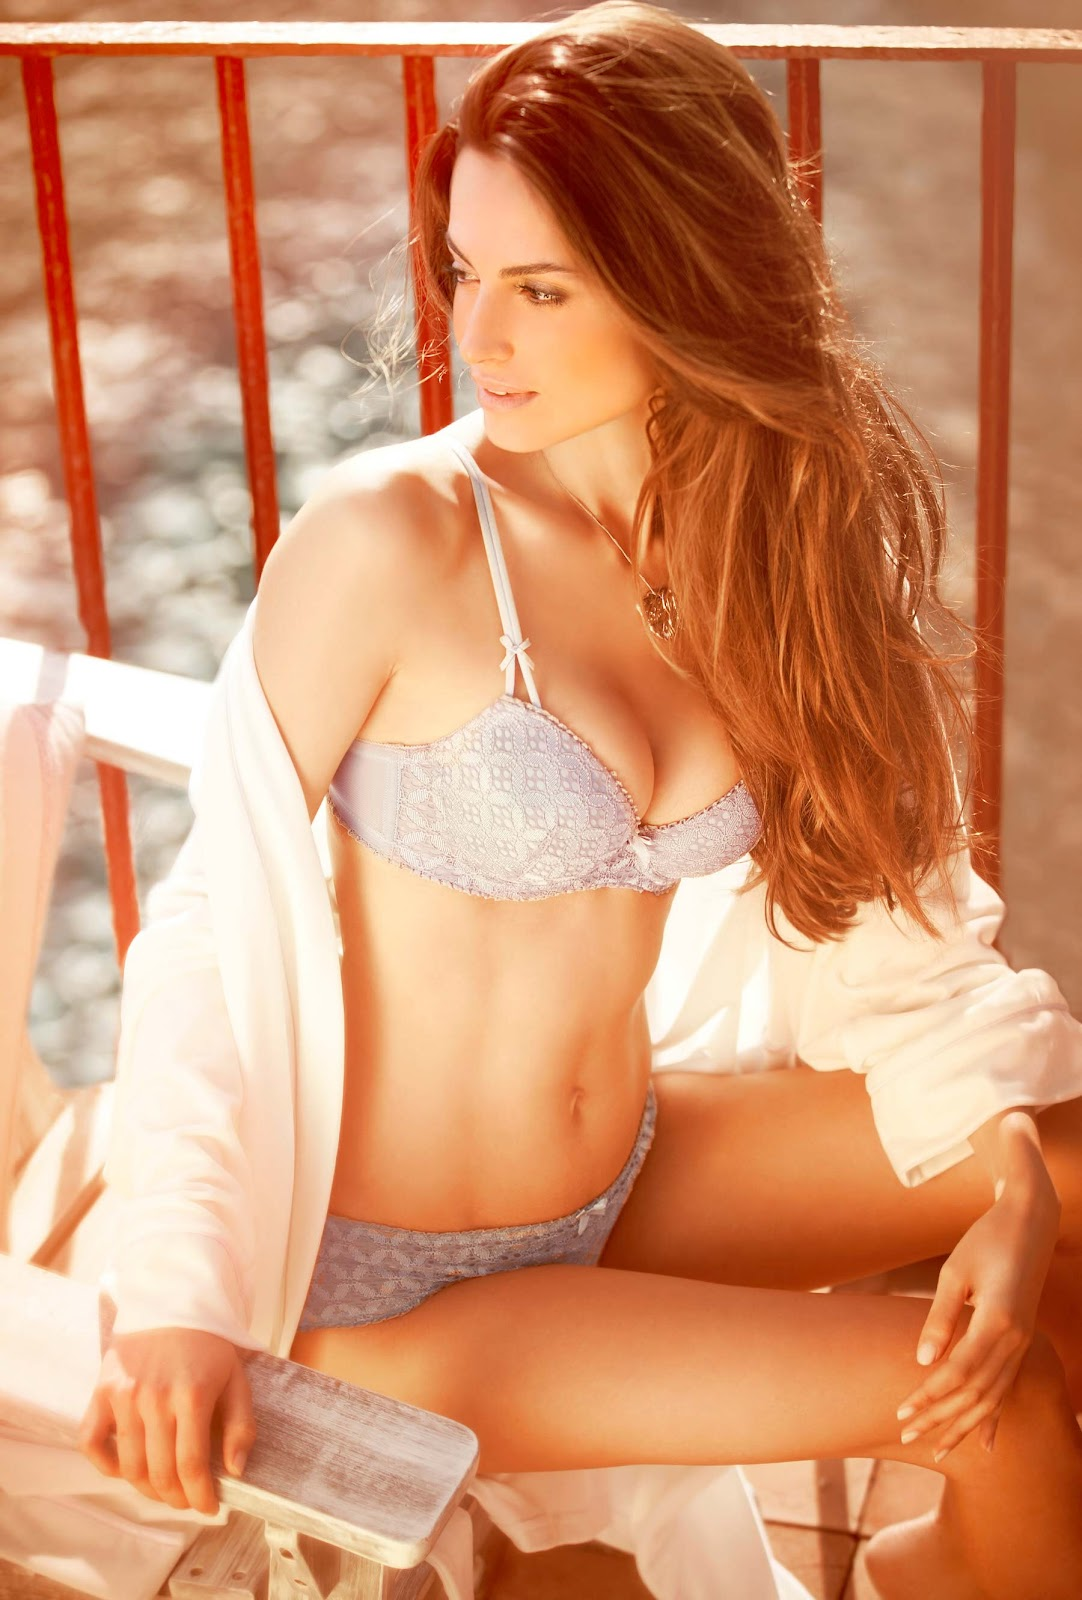 Ariadne Artiles Yamamay Lingerie Fall Collection 2012